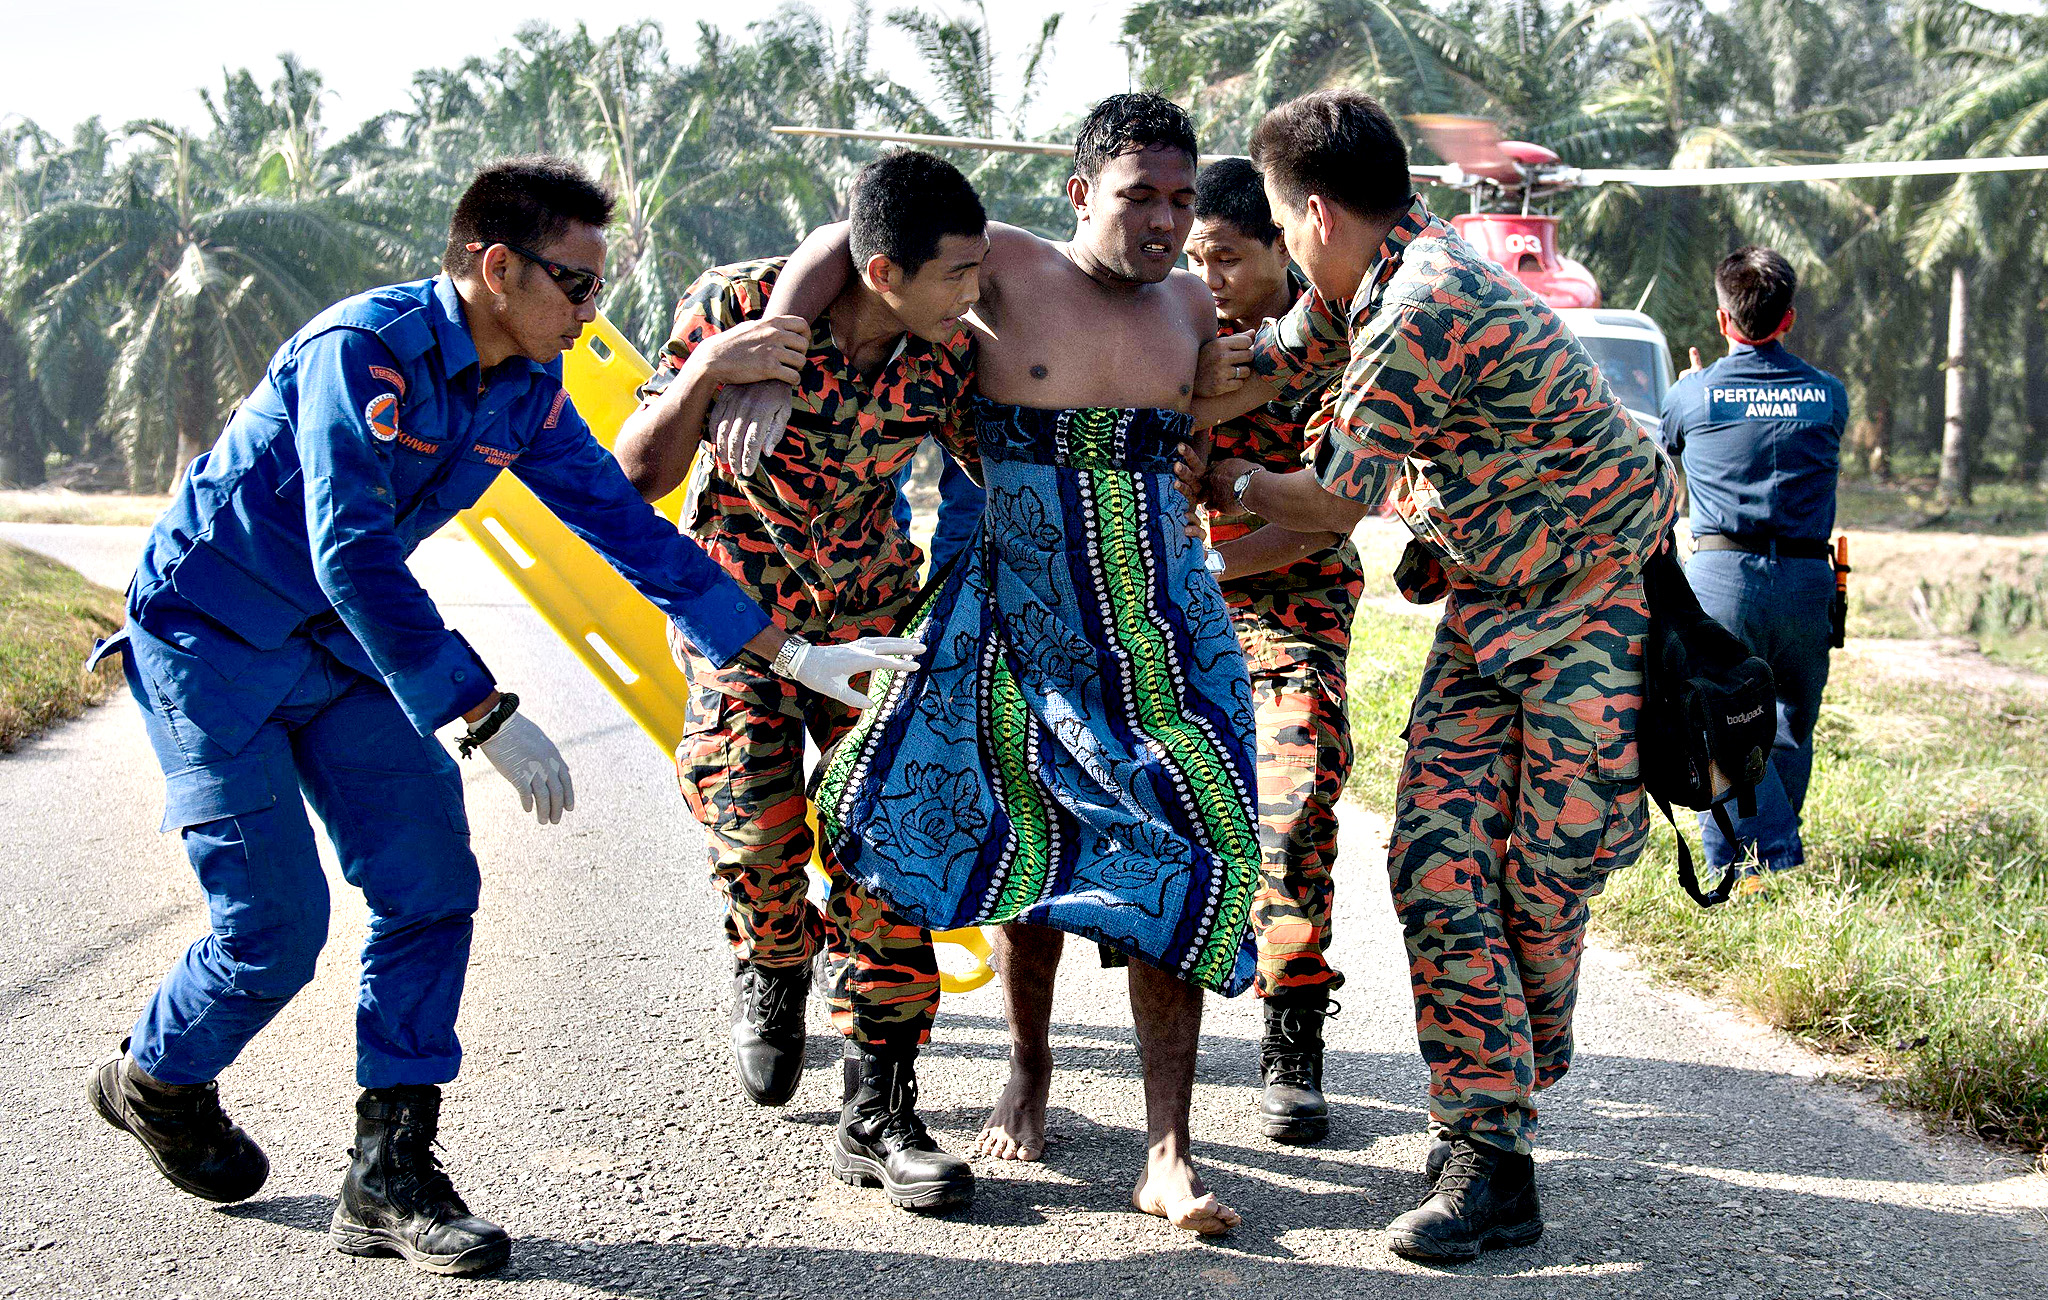 A Malaysian search and rescue team helps a rescued victim (C) from a capsized boat in Kelanang Jetty, near Banting after an apparently overloaded boat carrying Indonesian illegal migrants sank in seas off western Malaysia on June 19, 2014. The boat that sank off Malaysia with 97 Indonesian illegal migrants was likely carrying three times more passengers than it could safely transport, authorities said on June 19 as they expanded a search for 26 still missing.